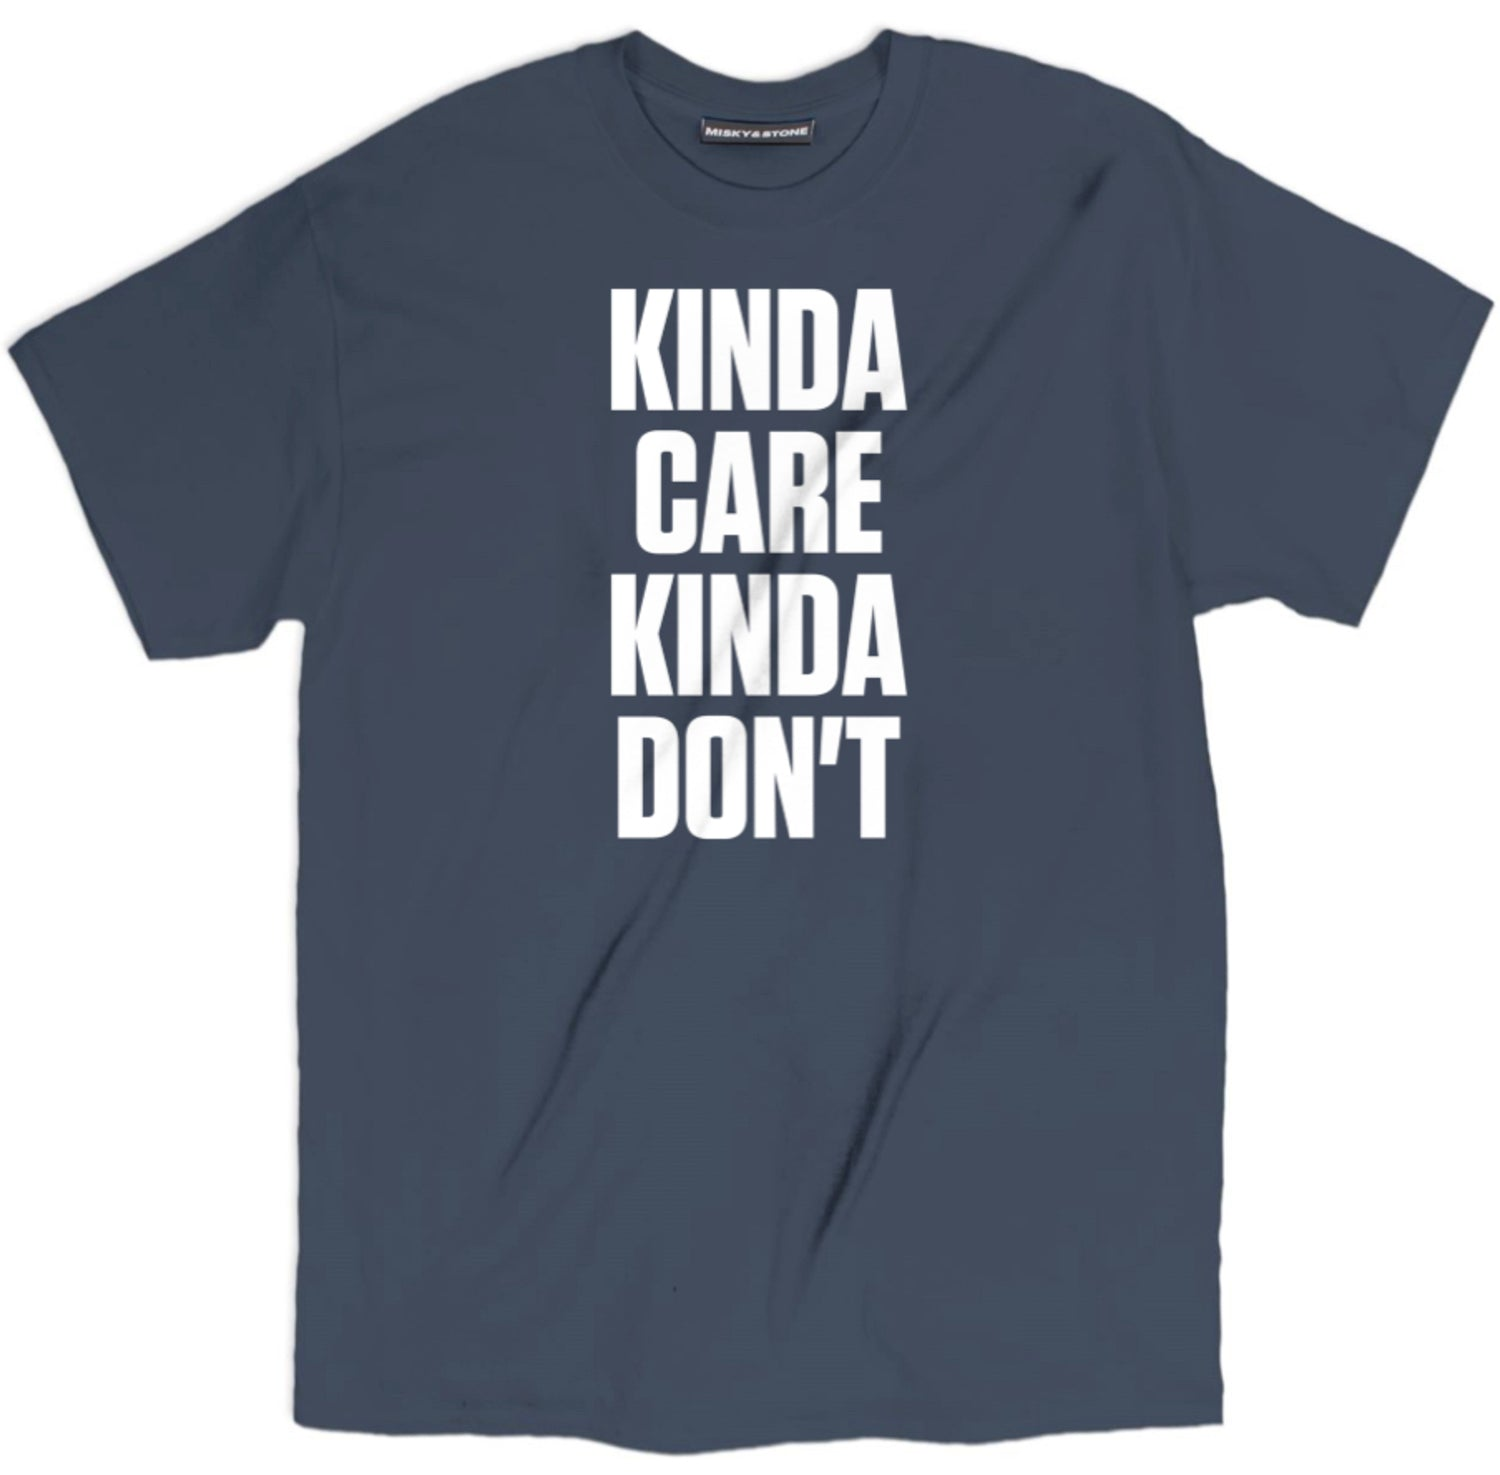 Kinda Care Kinda Dont Shirt